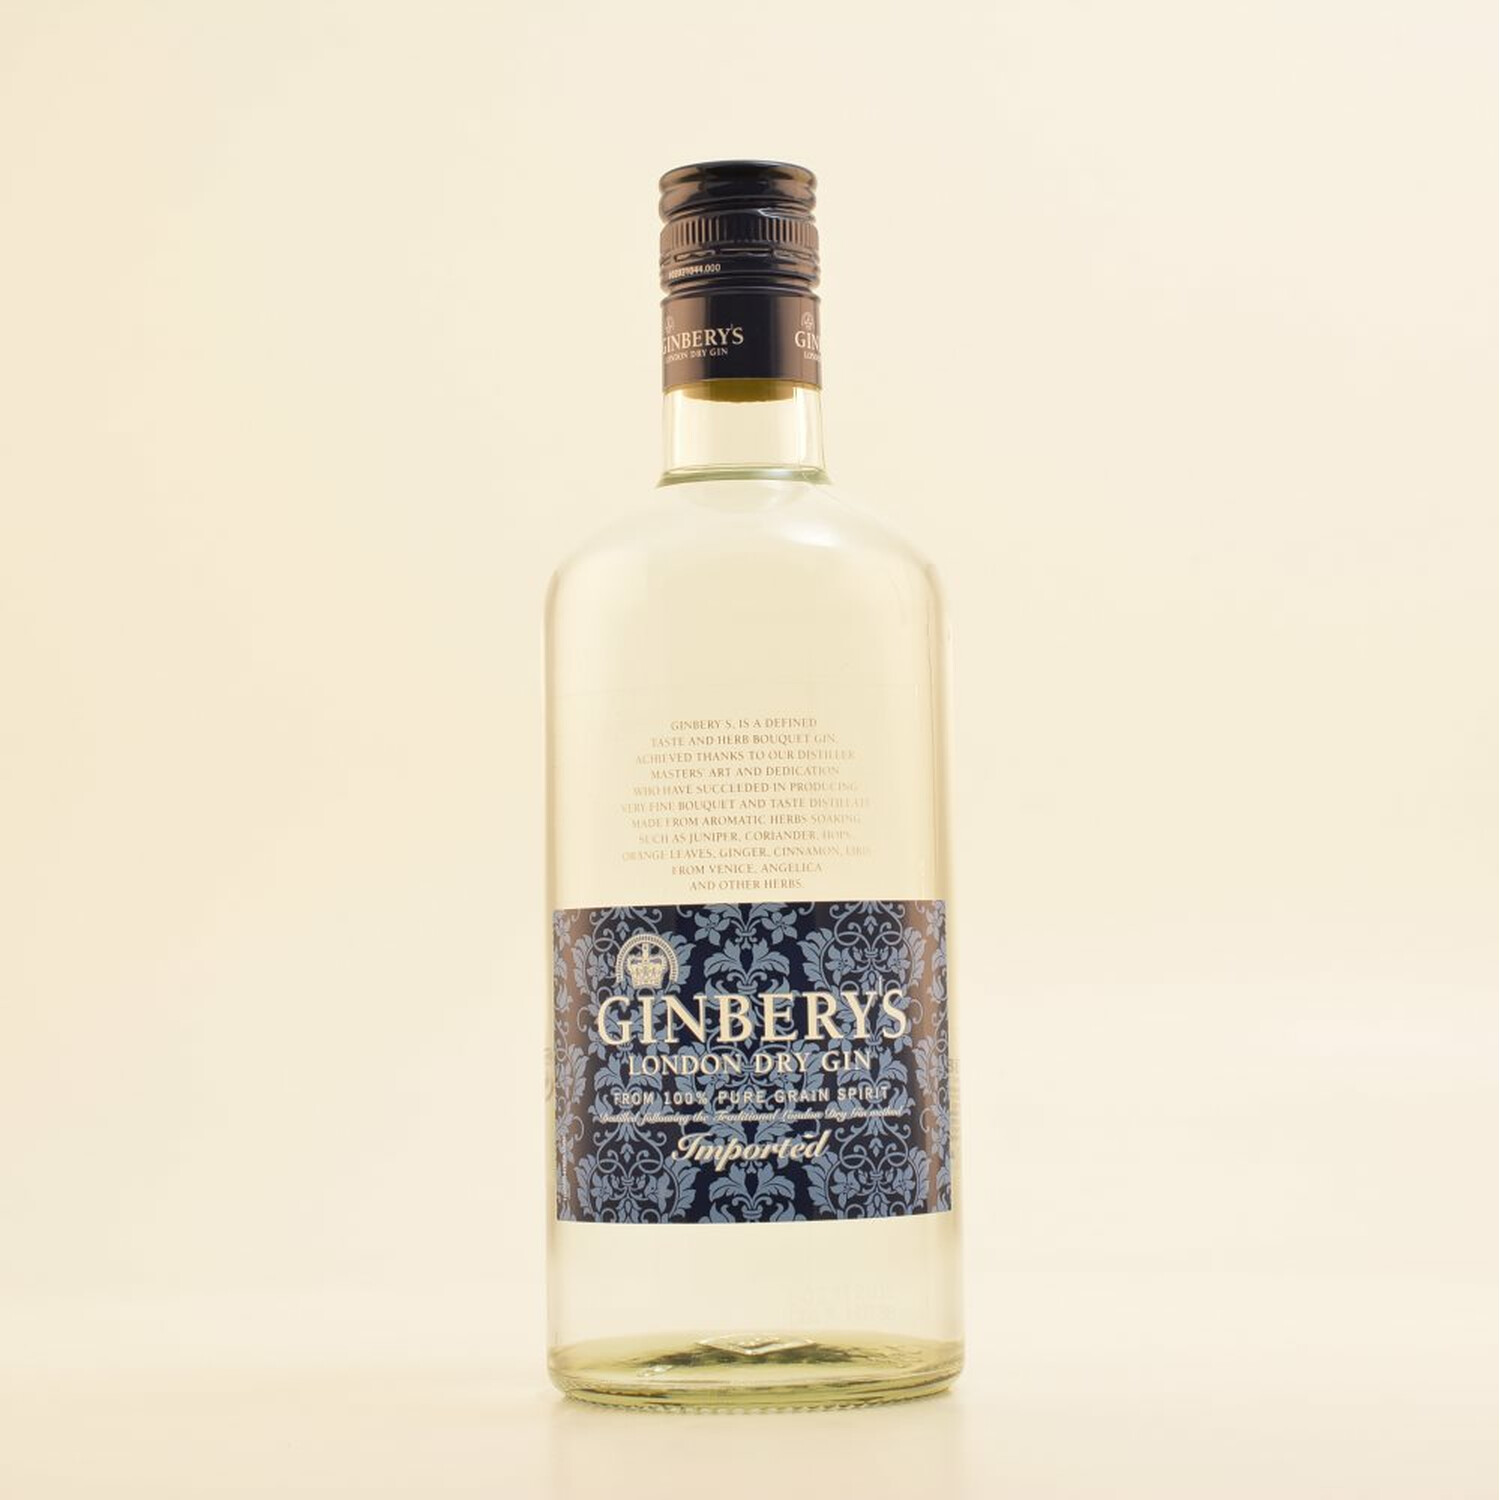 Ginbery´s Gin London Dry Gin 37,5% 0,7l (14,14 € pro 1 l)